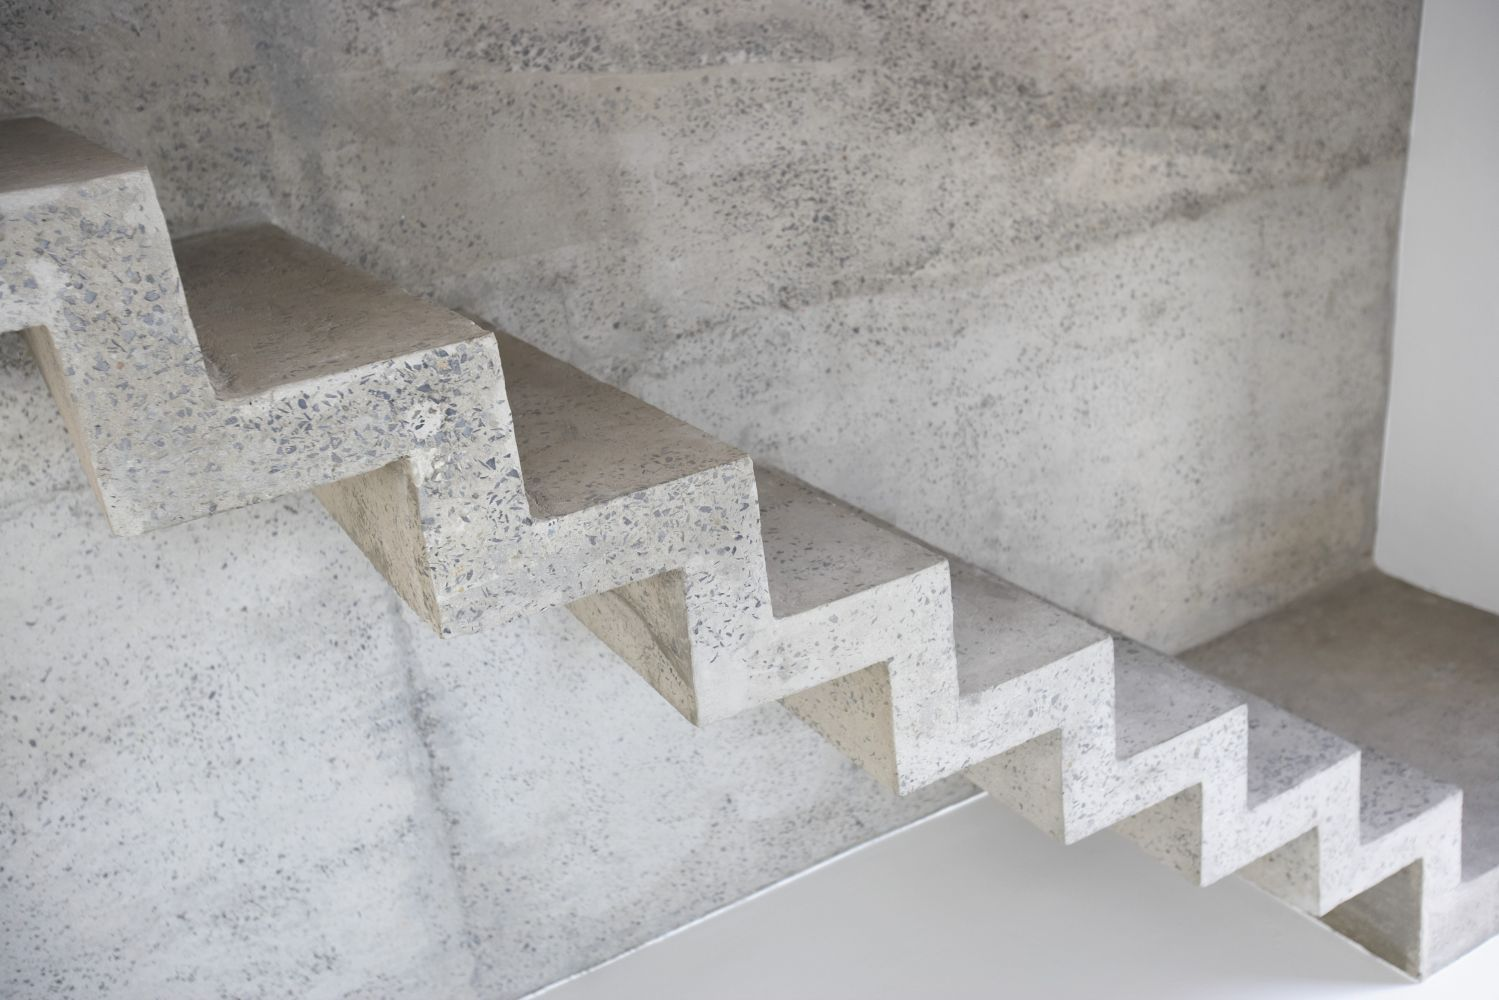 Stairs made by concreting professionals in Auckland